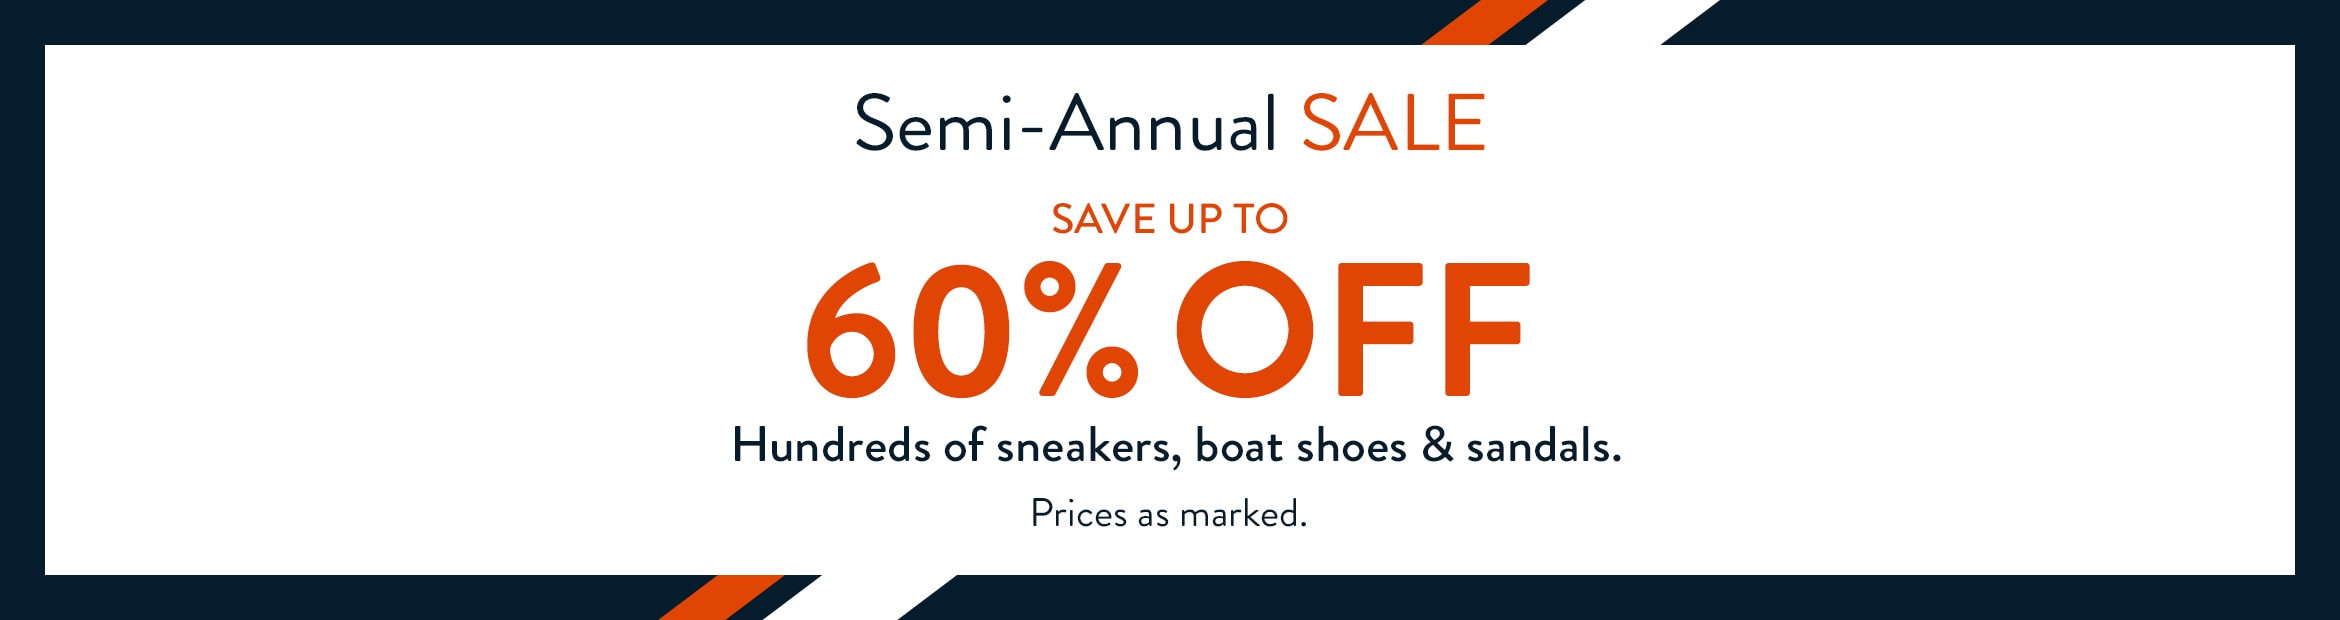 Semi-Annual SALE.  Save up to 60% off hundreds of sneakers, boat shoes and sandals. Prices as marked.